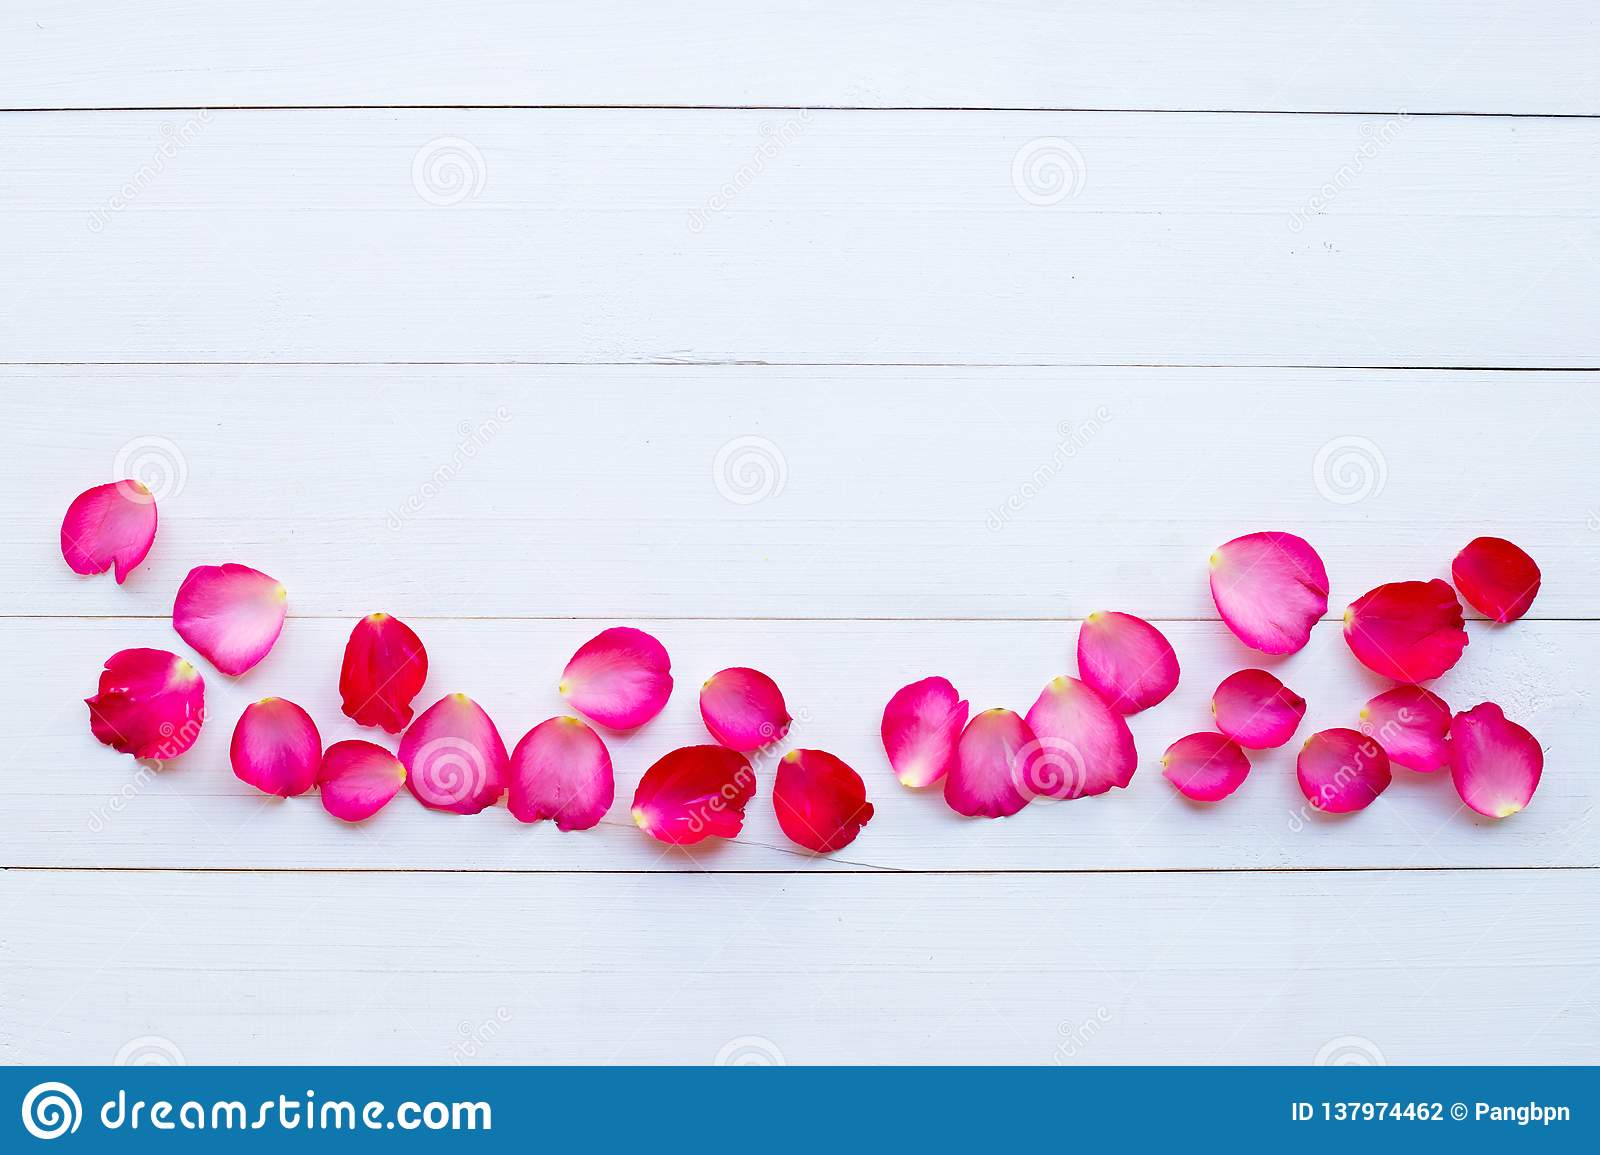 Rose petals on white wooden